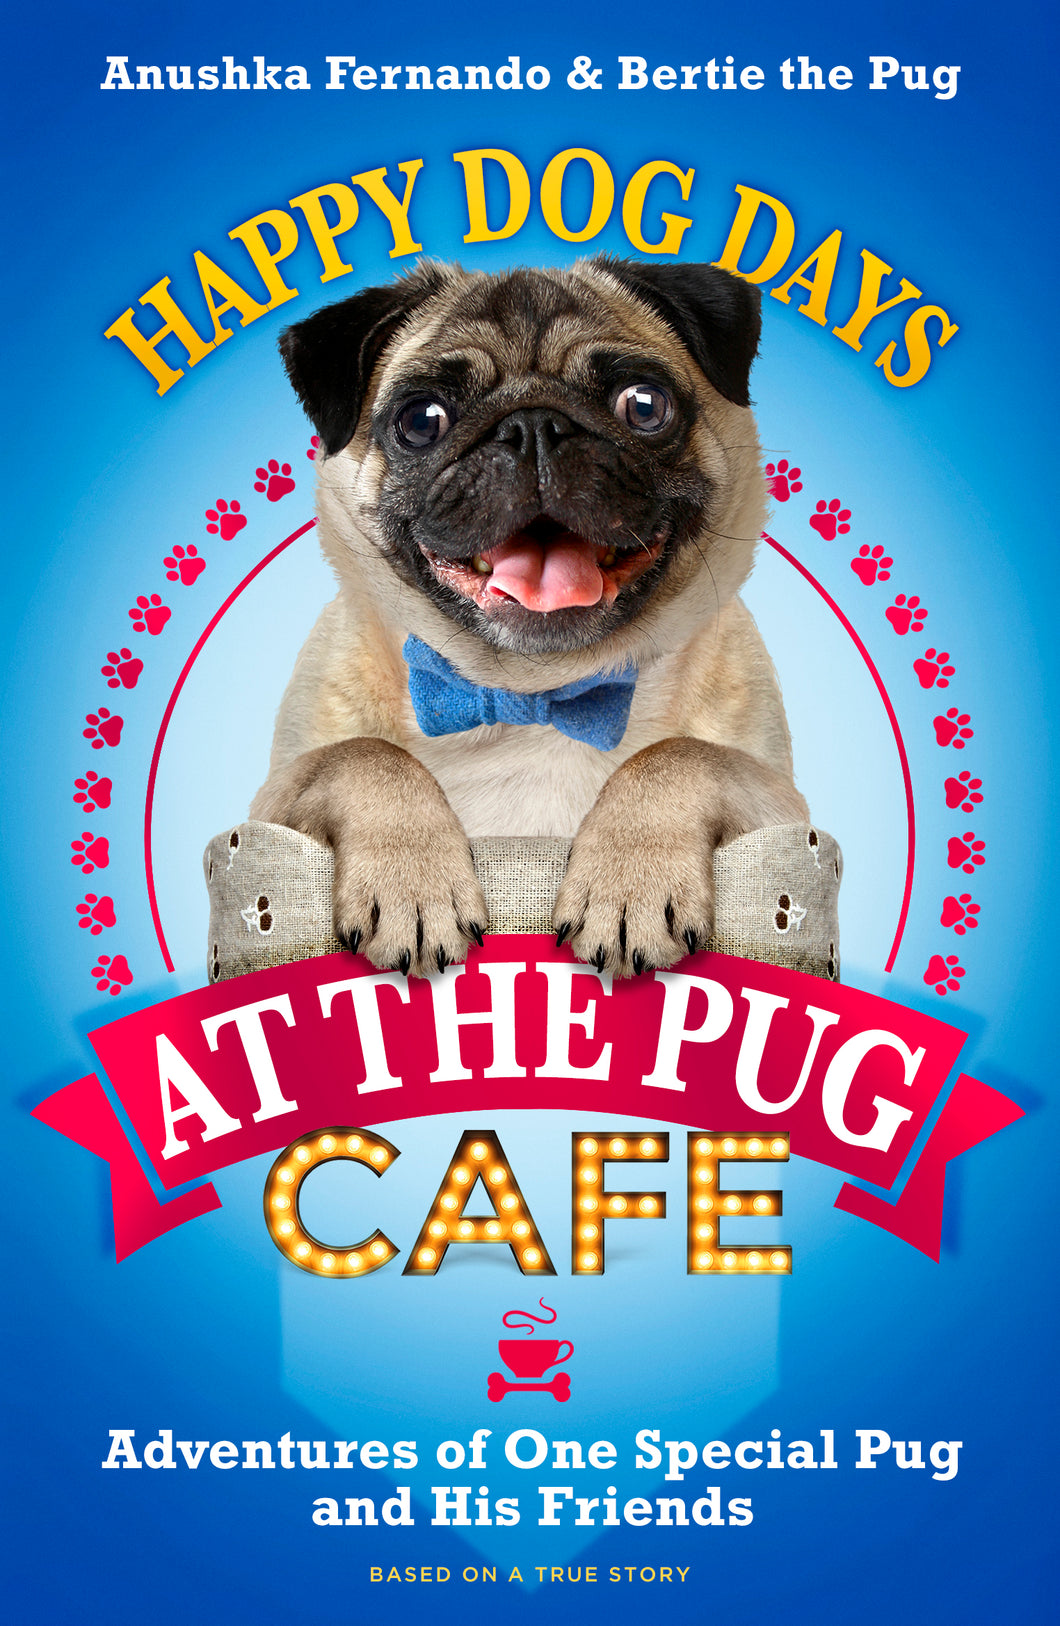 Happy Dog Days at the PUG Cafe